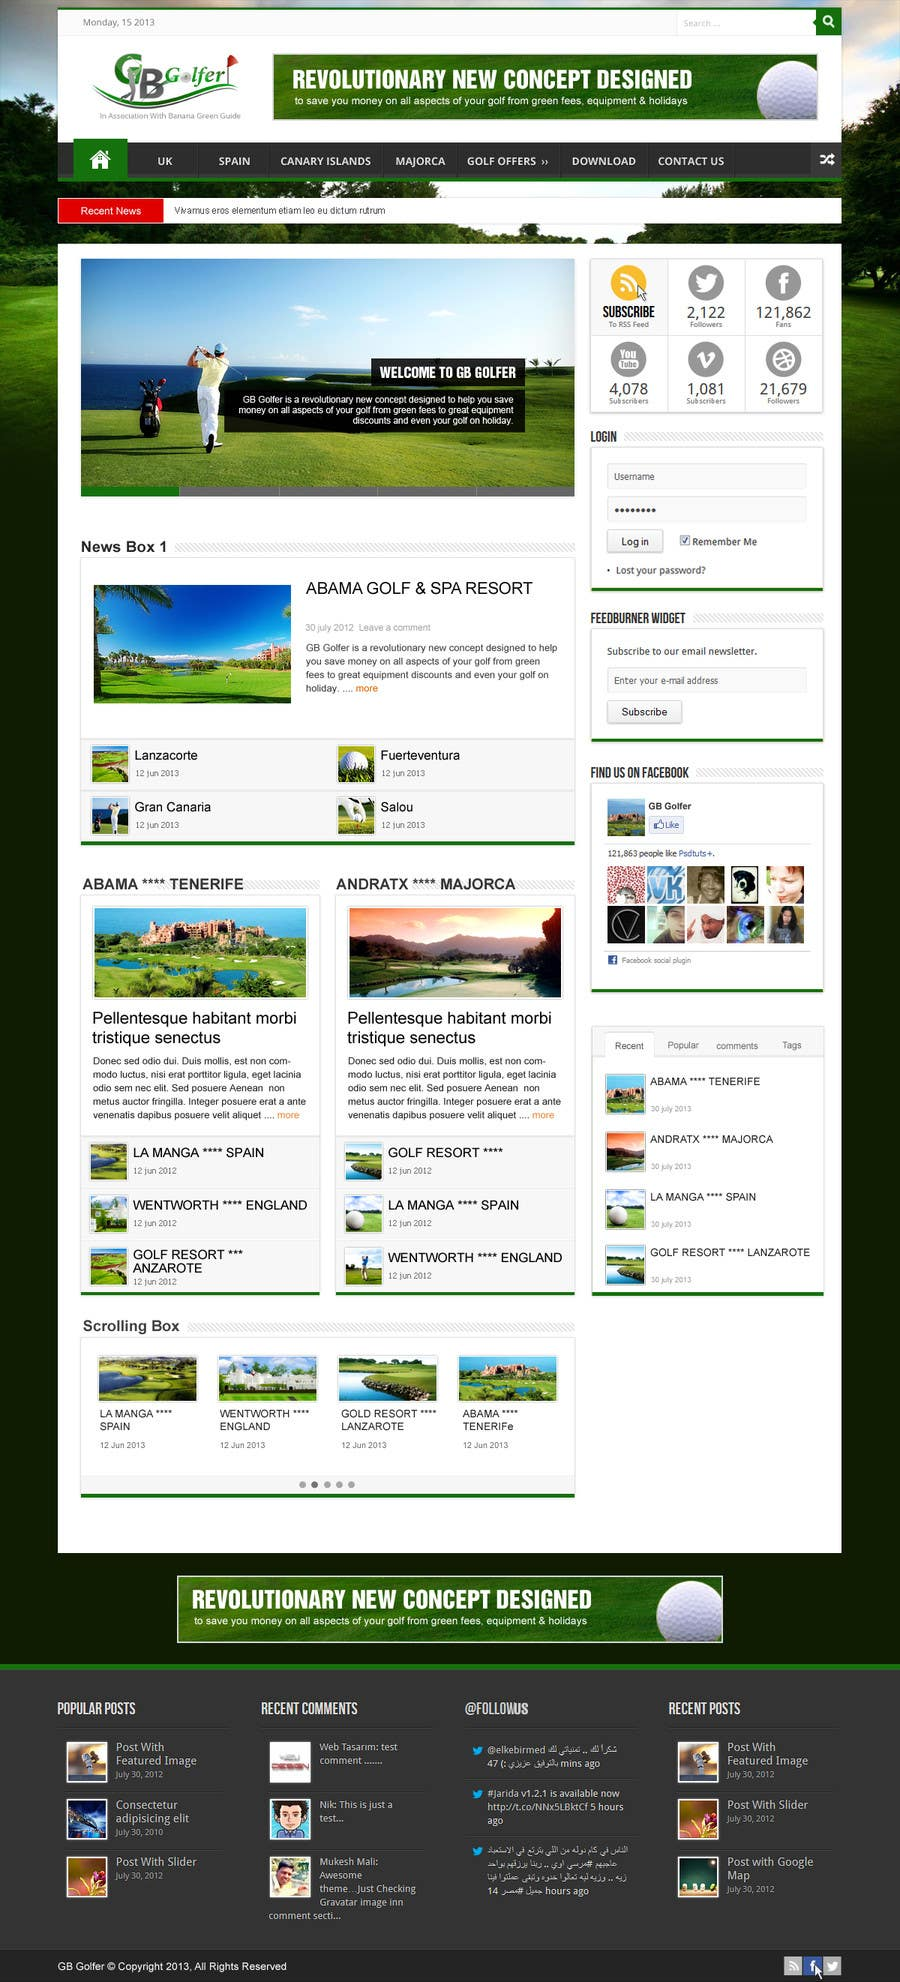 Konkurrenceindlæg #                                        5                                      for                                         Wordpress Theme Design for GB Golfer